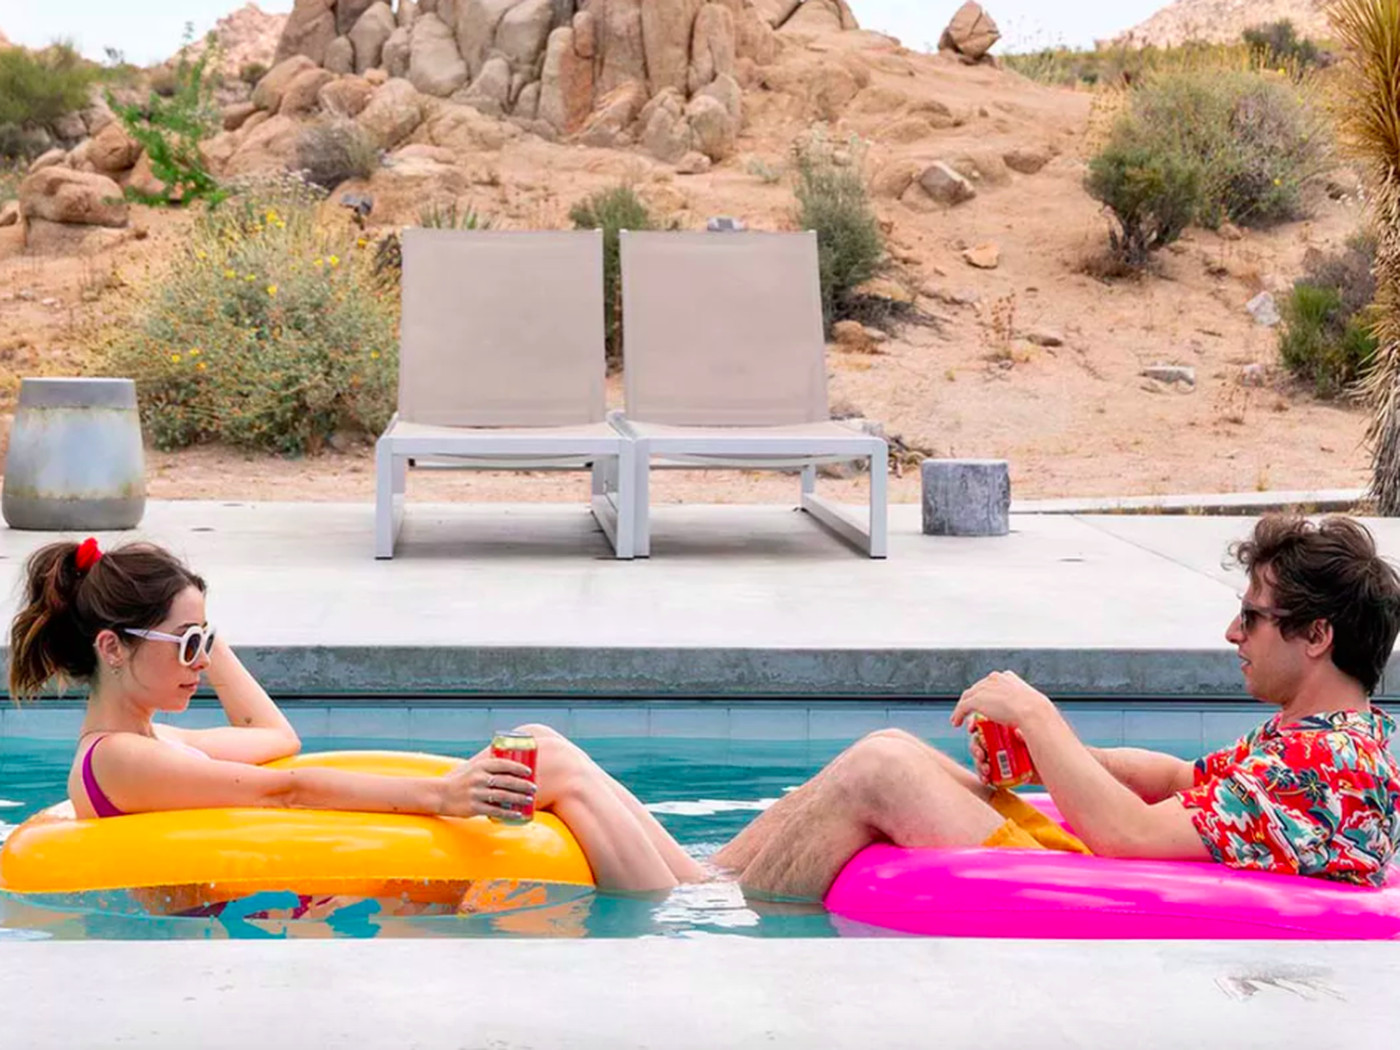 Palm Springs review: the perfect comedy for a world where nothing matters  anymore - The Verge